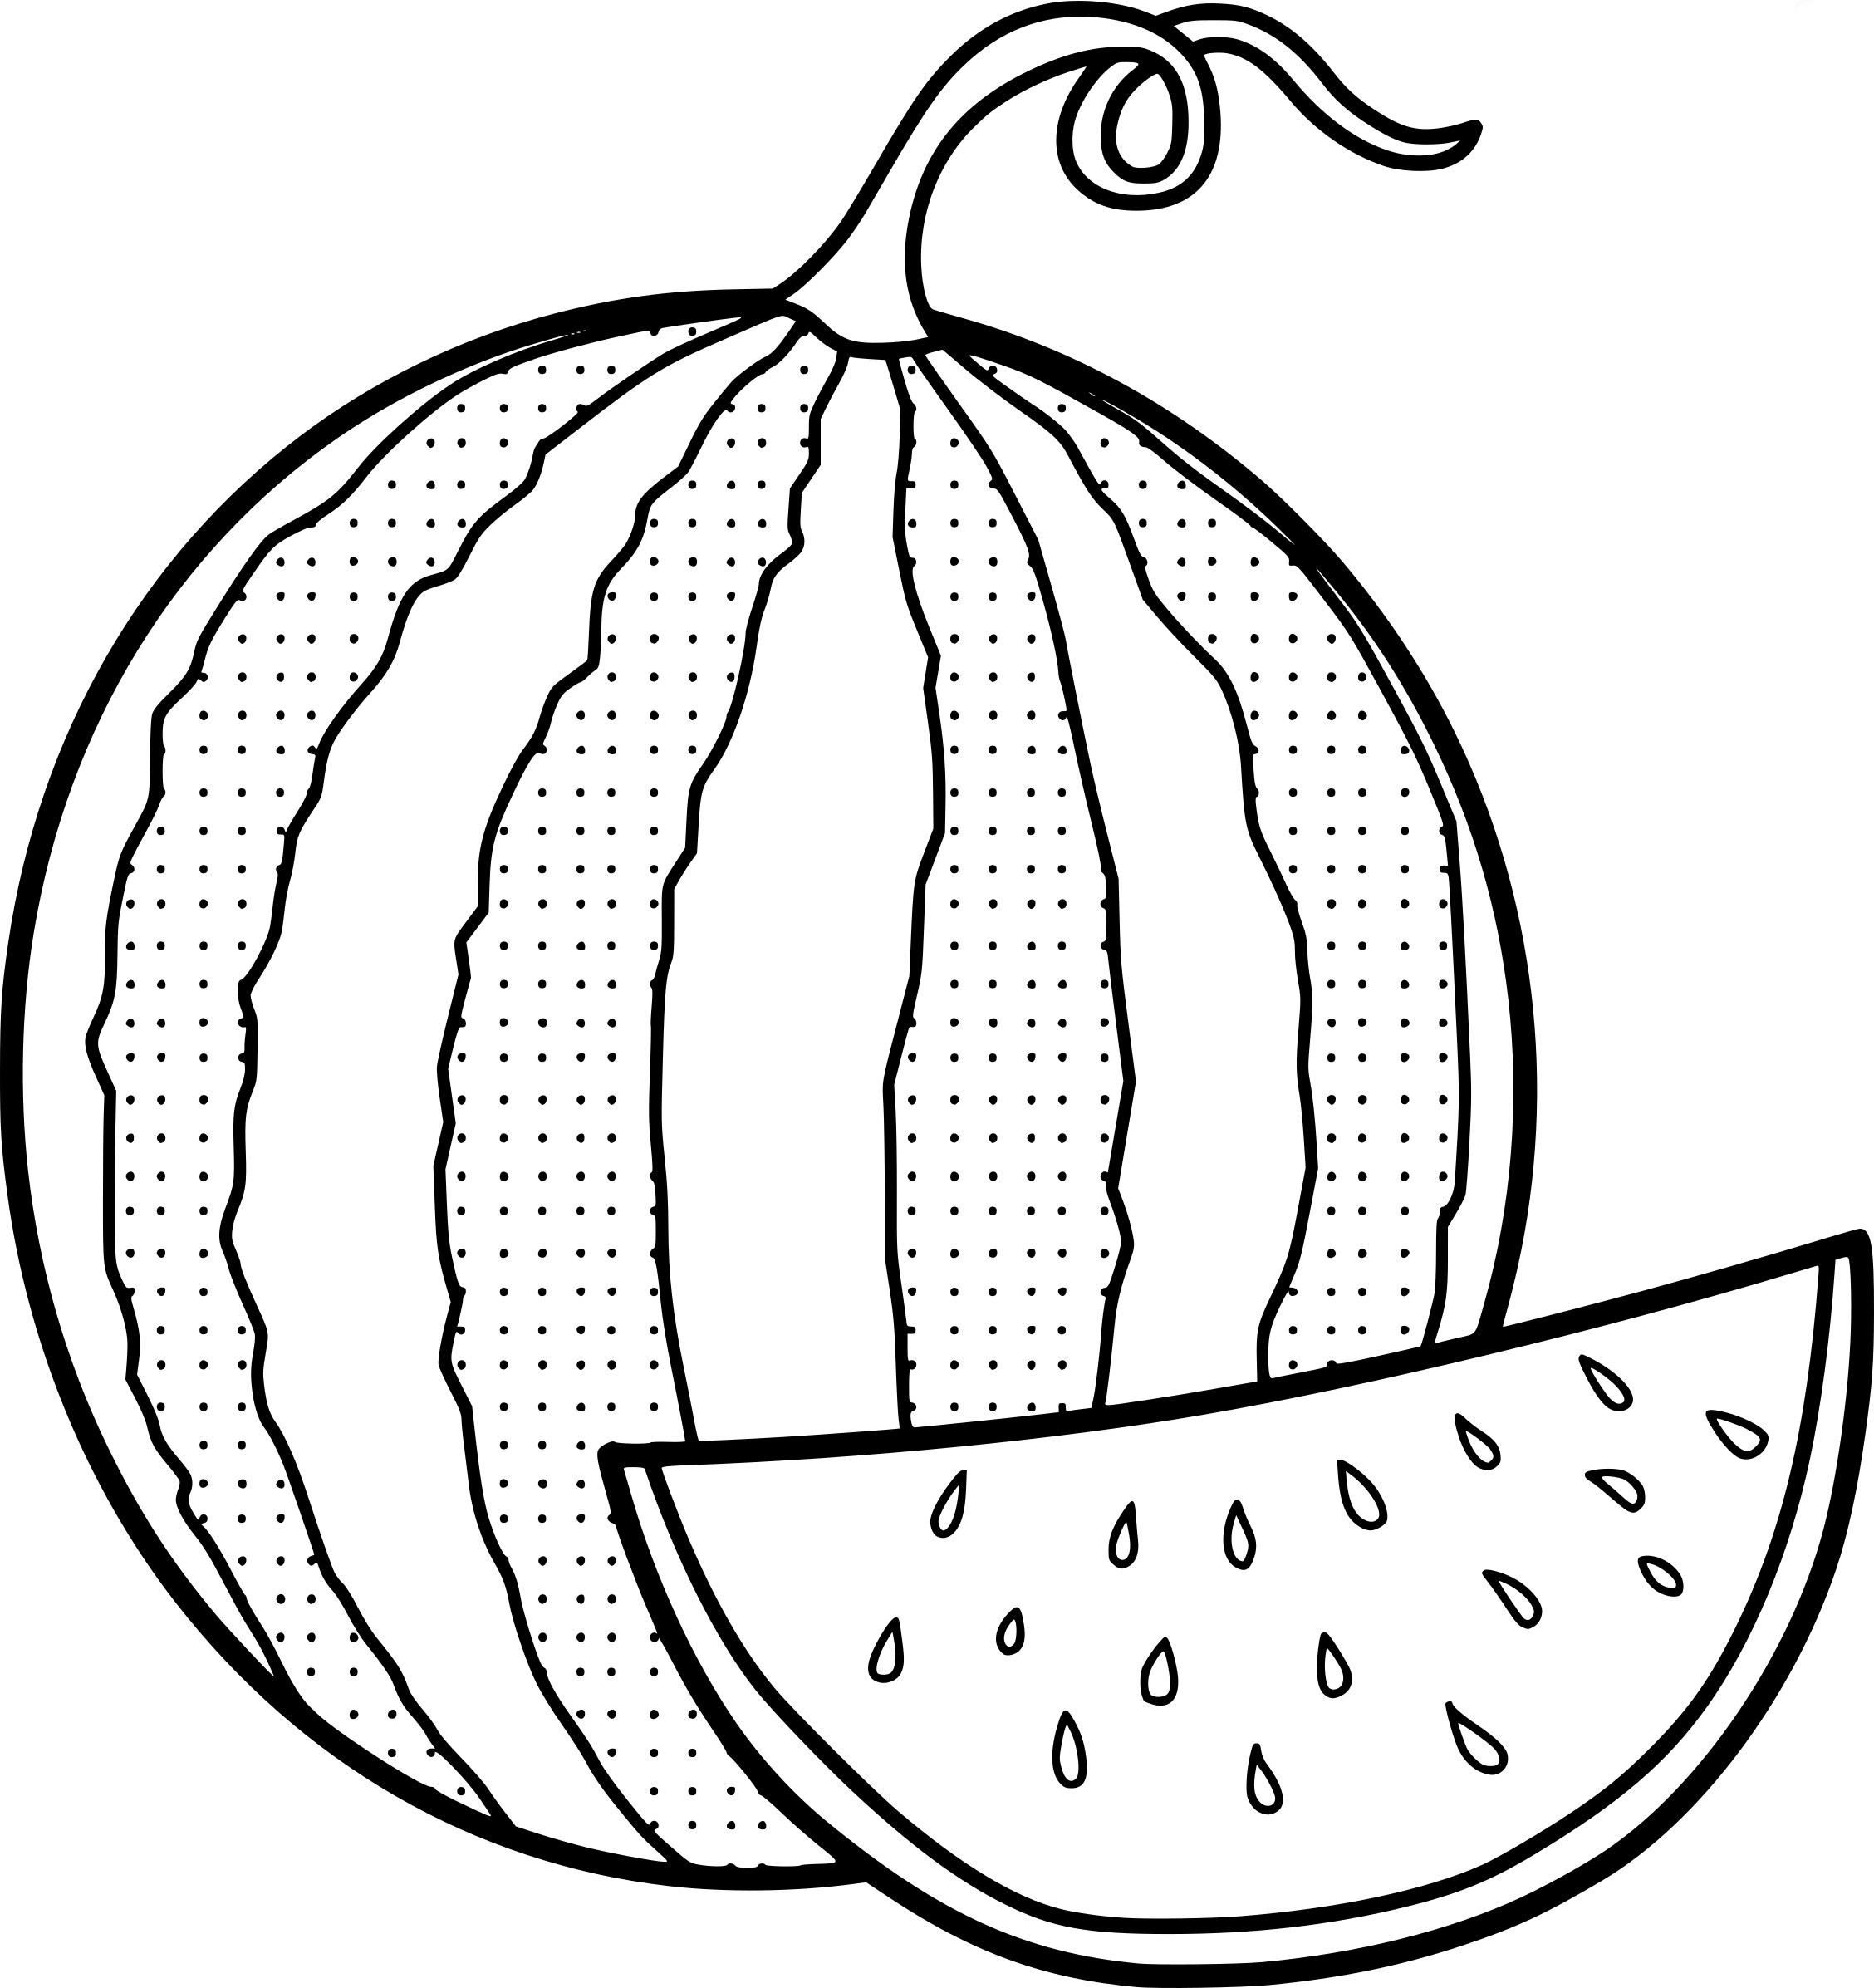 watermelon coloring pages watermelon coloring pages best coloring pages for kids watermelon pages coloring